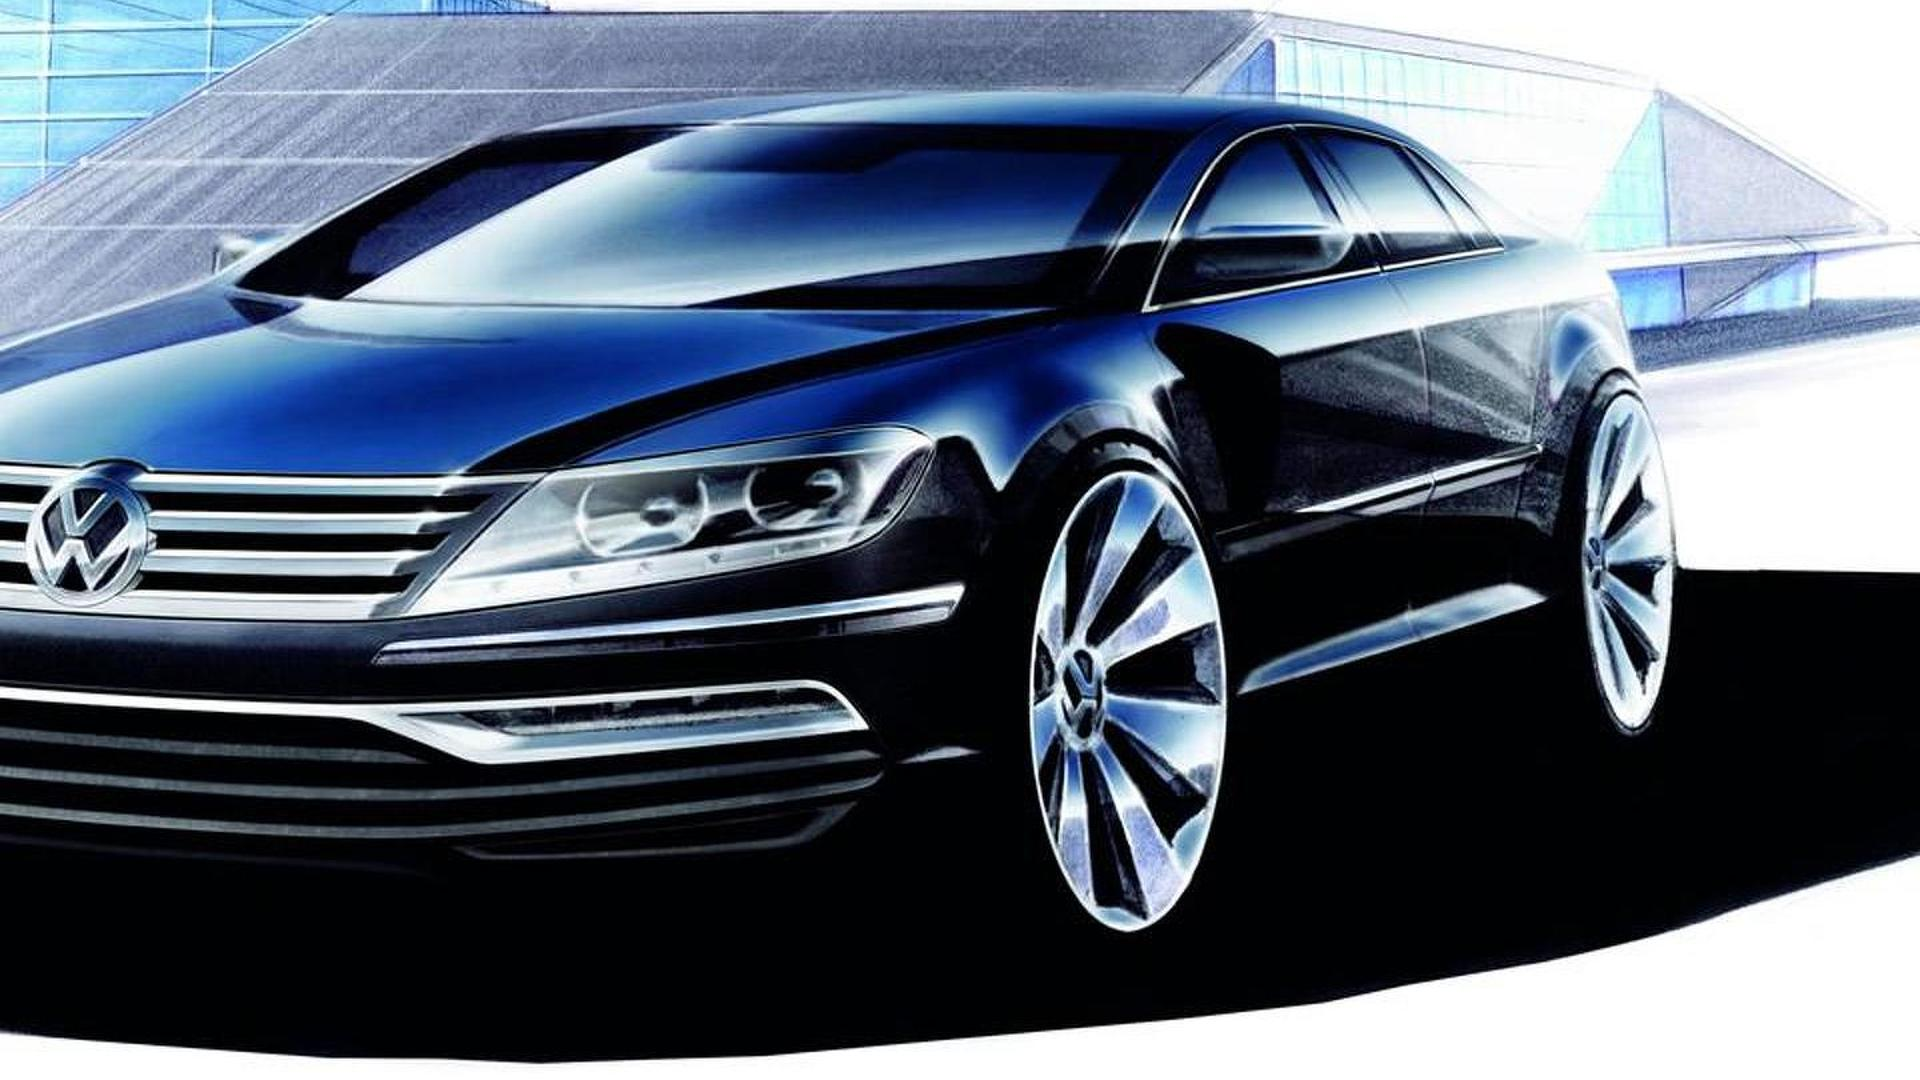 Next-generation Volkswagen Phaeton reportedly pushed back to 2018